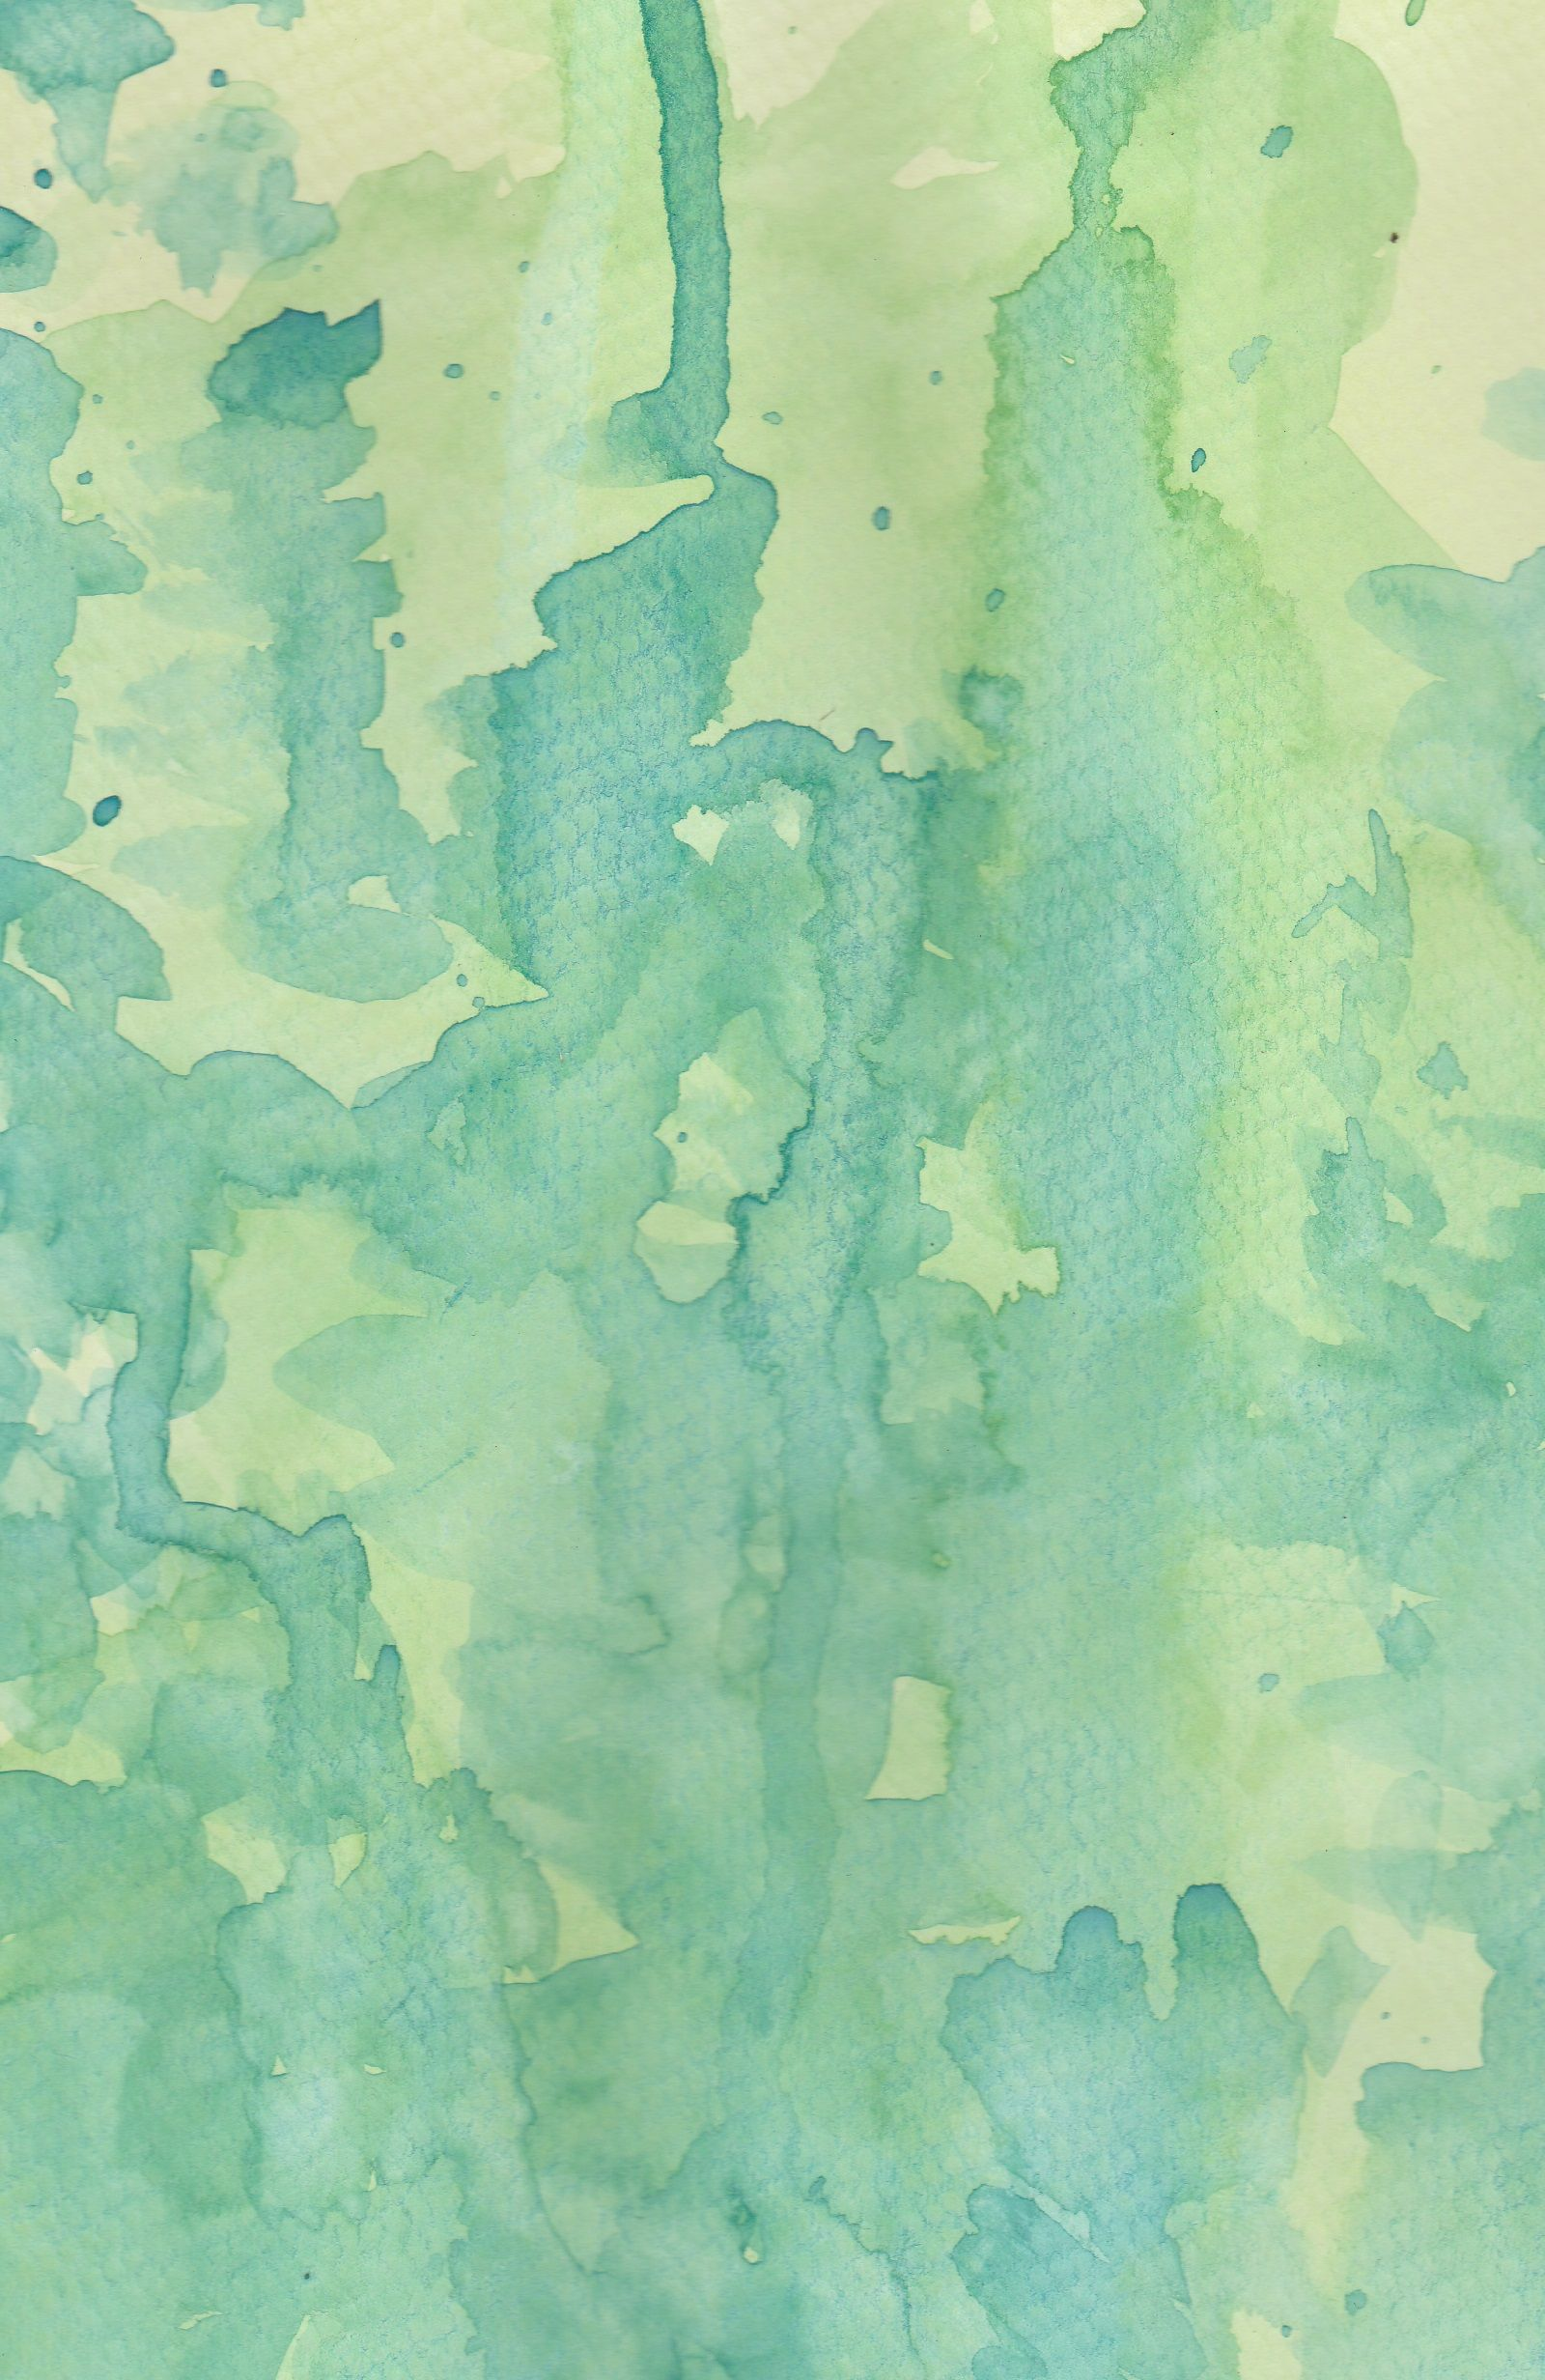 Mint Pastel Watercolour Texture Phone Background Iphone Wallpaper